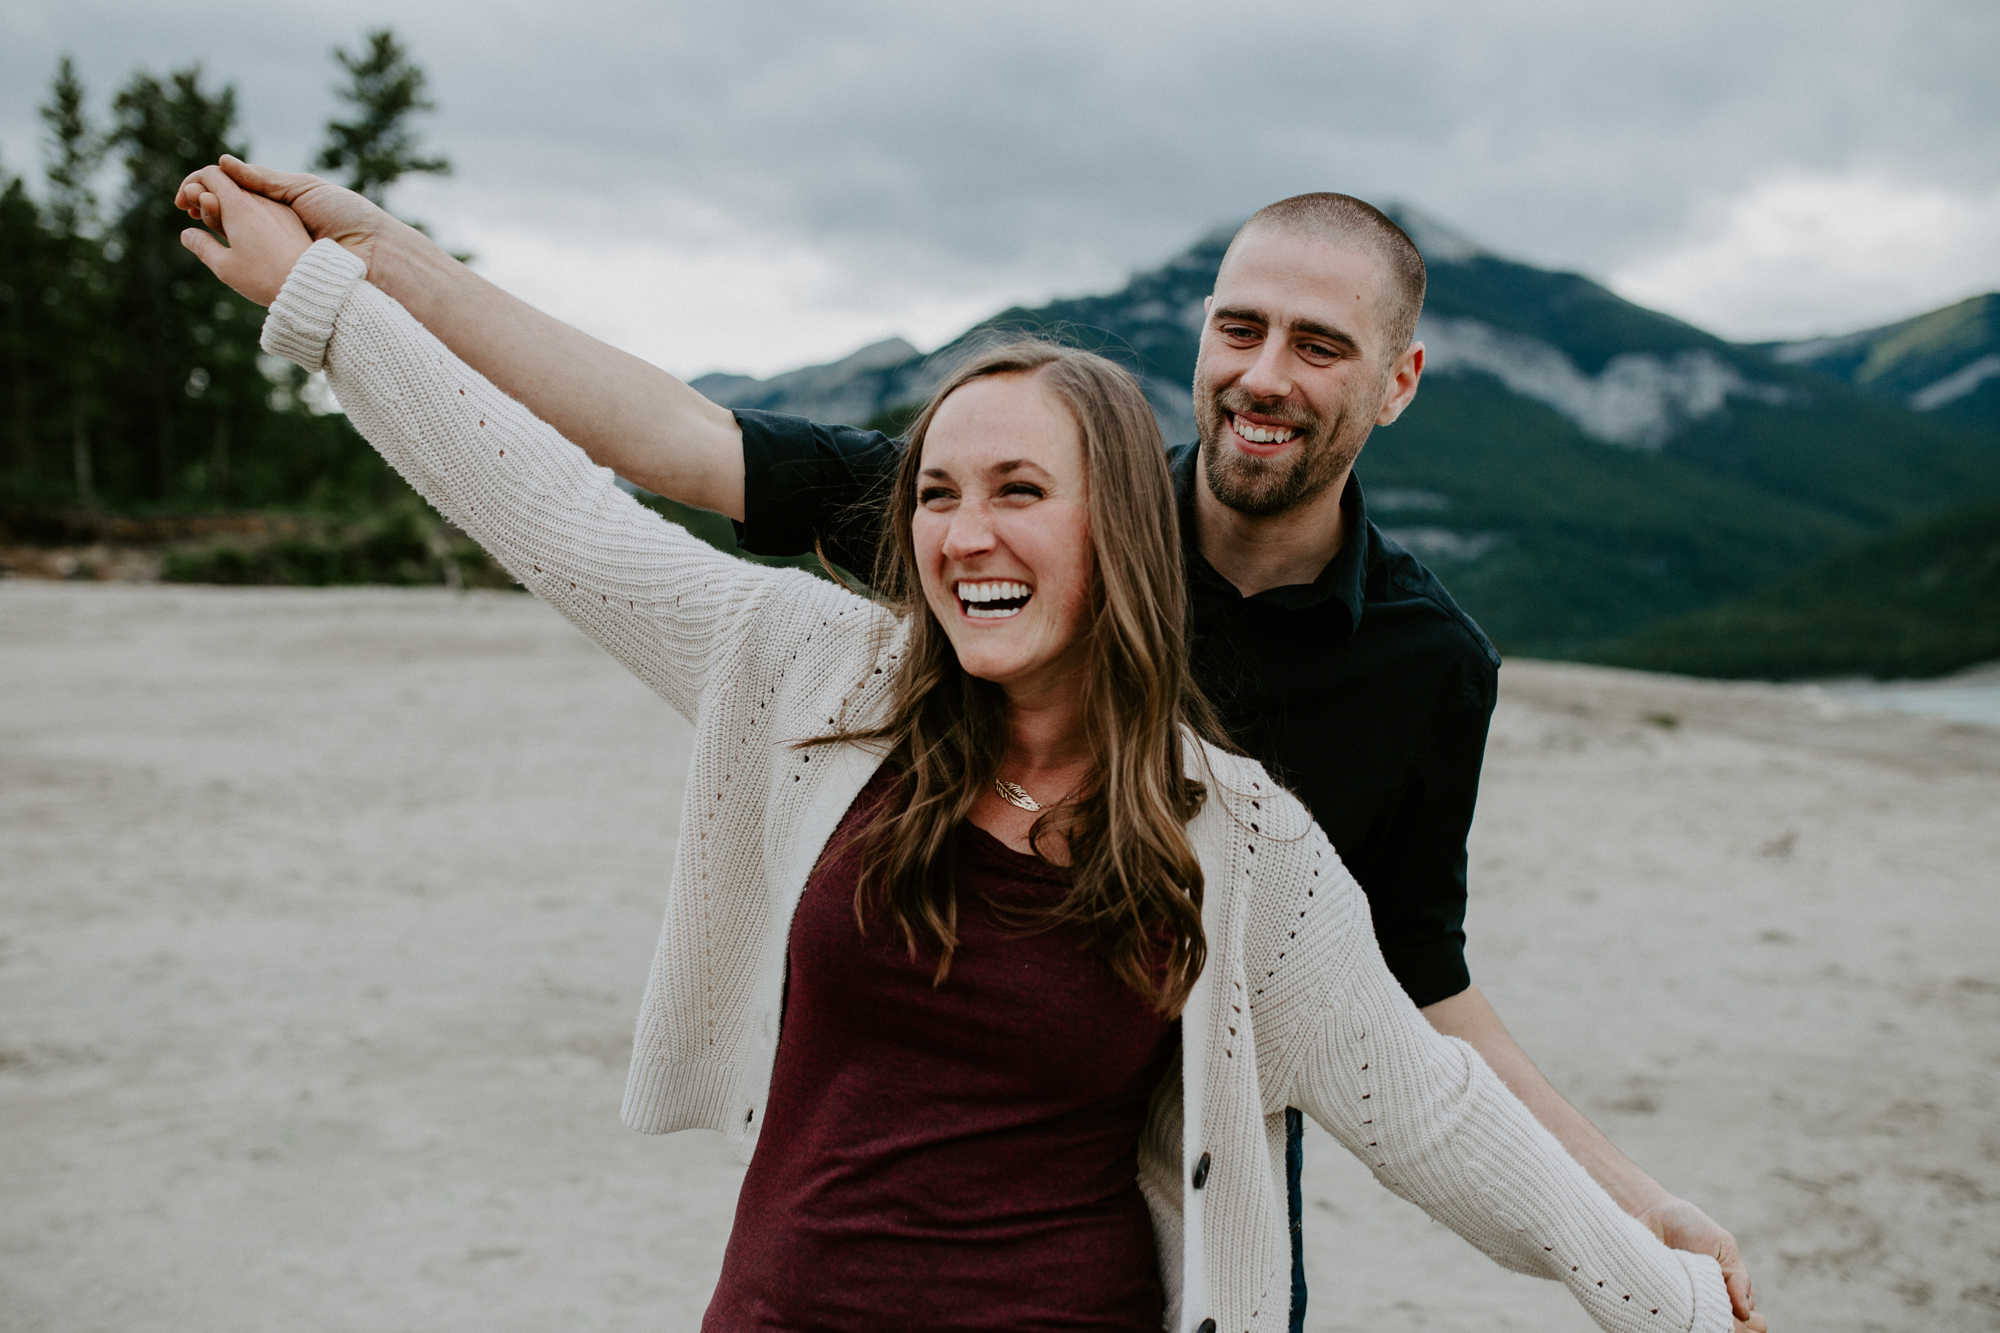 Kananaskis-engagement-session-photographer-jm-18.jpg